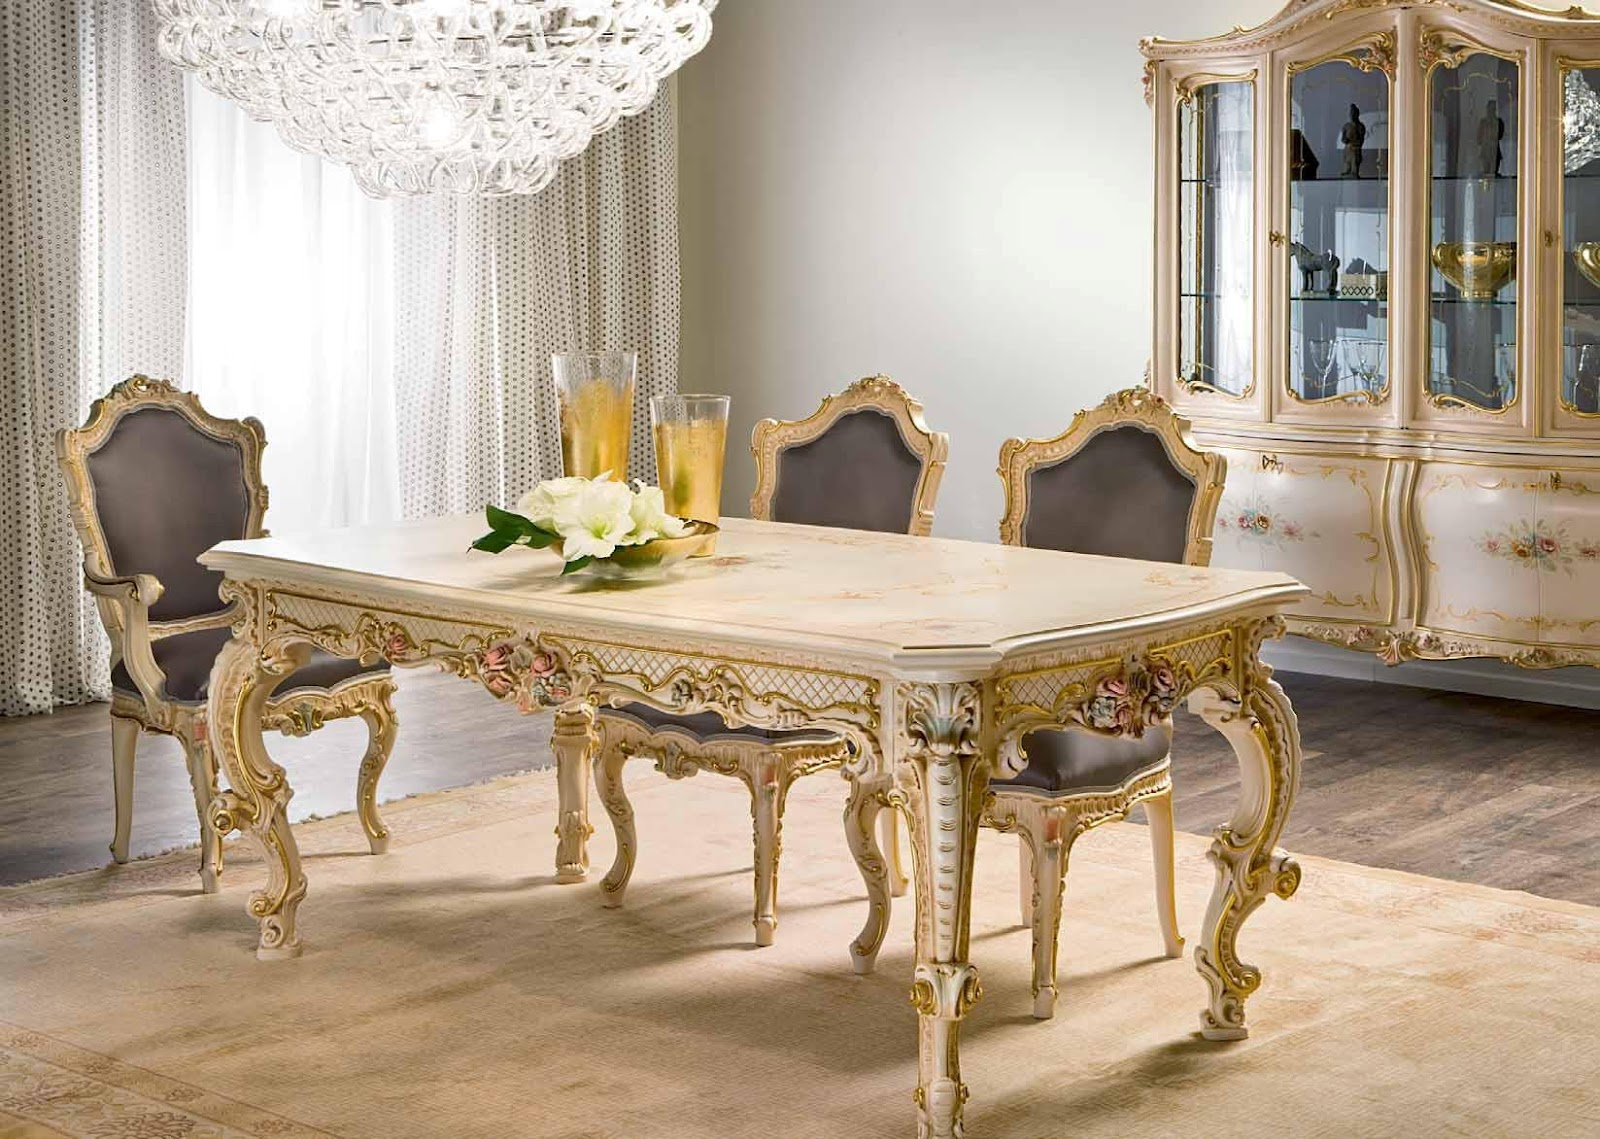 Antique french furniture french style furniture for French dining room furniture